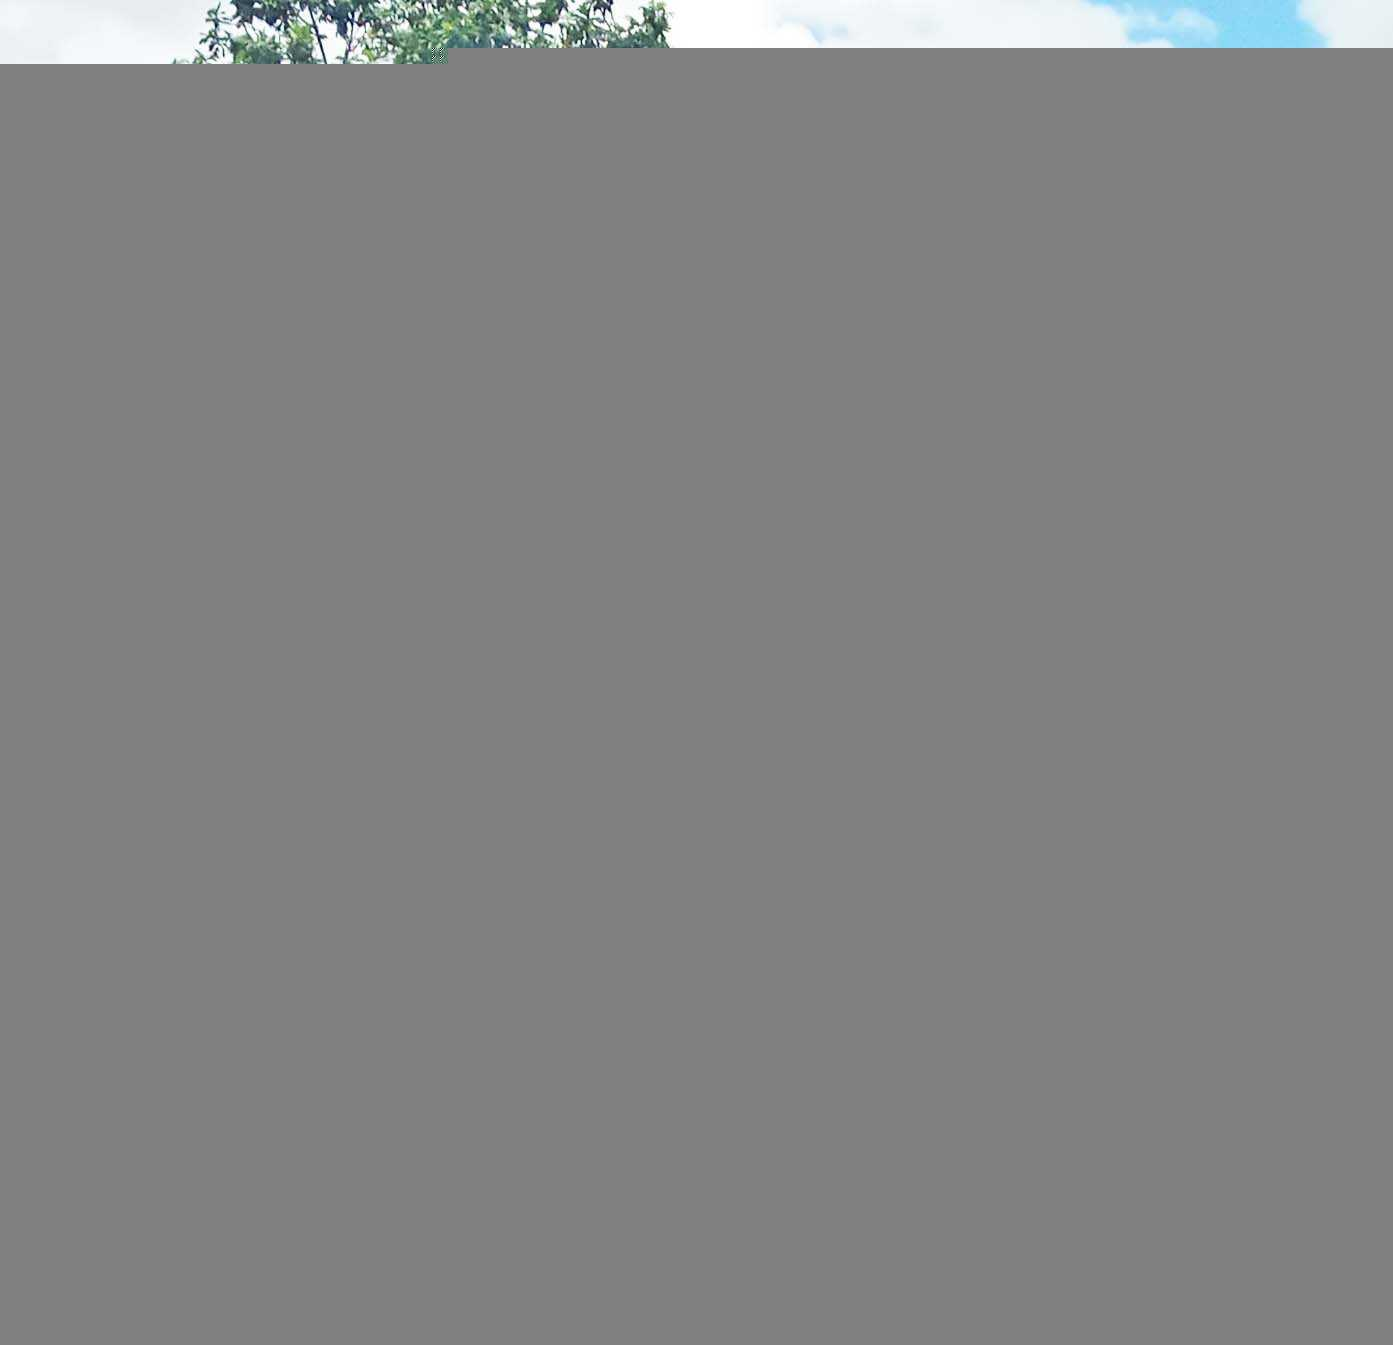 https://octra.io/octram/photos/logos/pharmacie_esperance.jpg